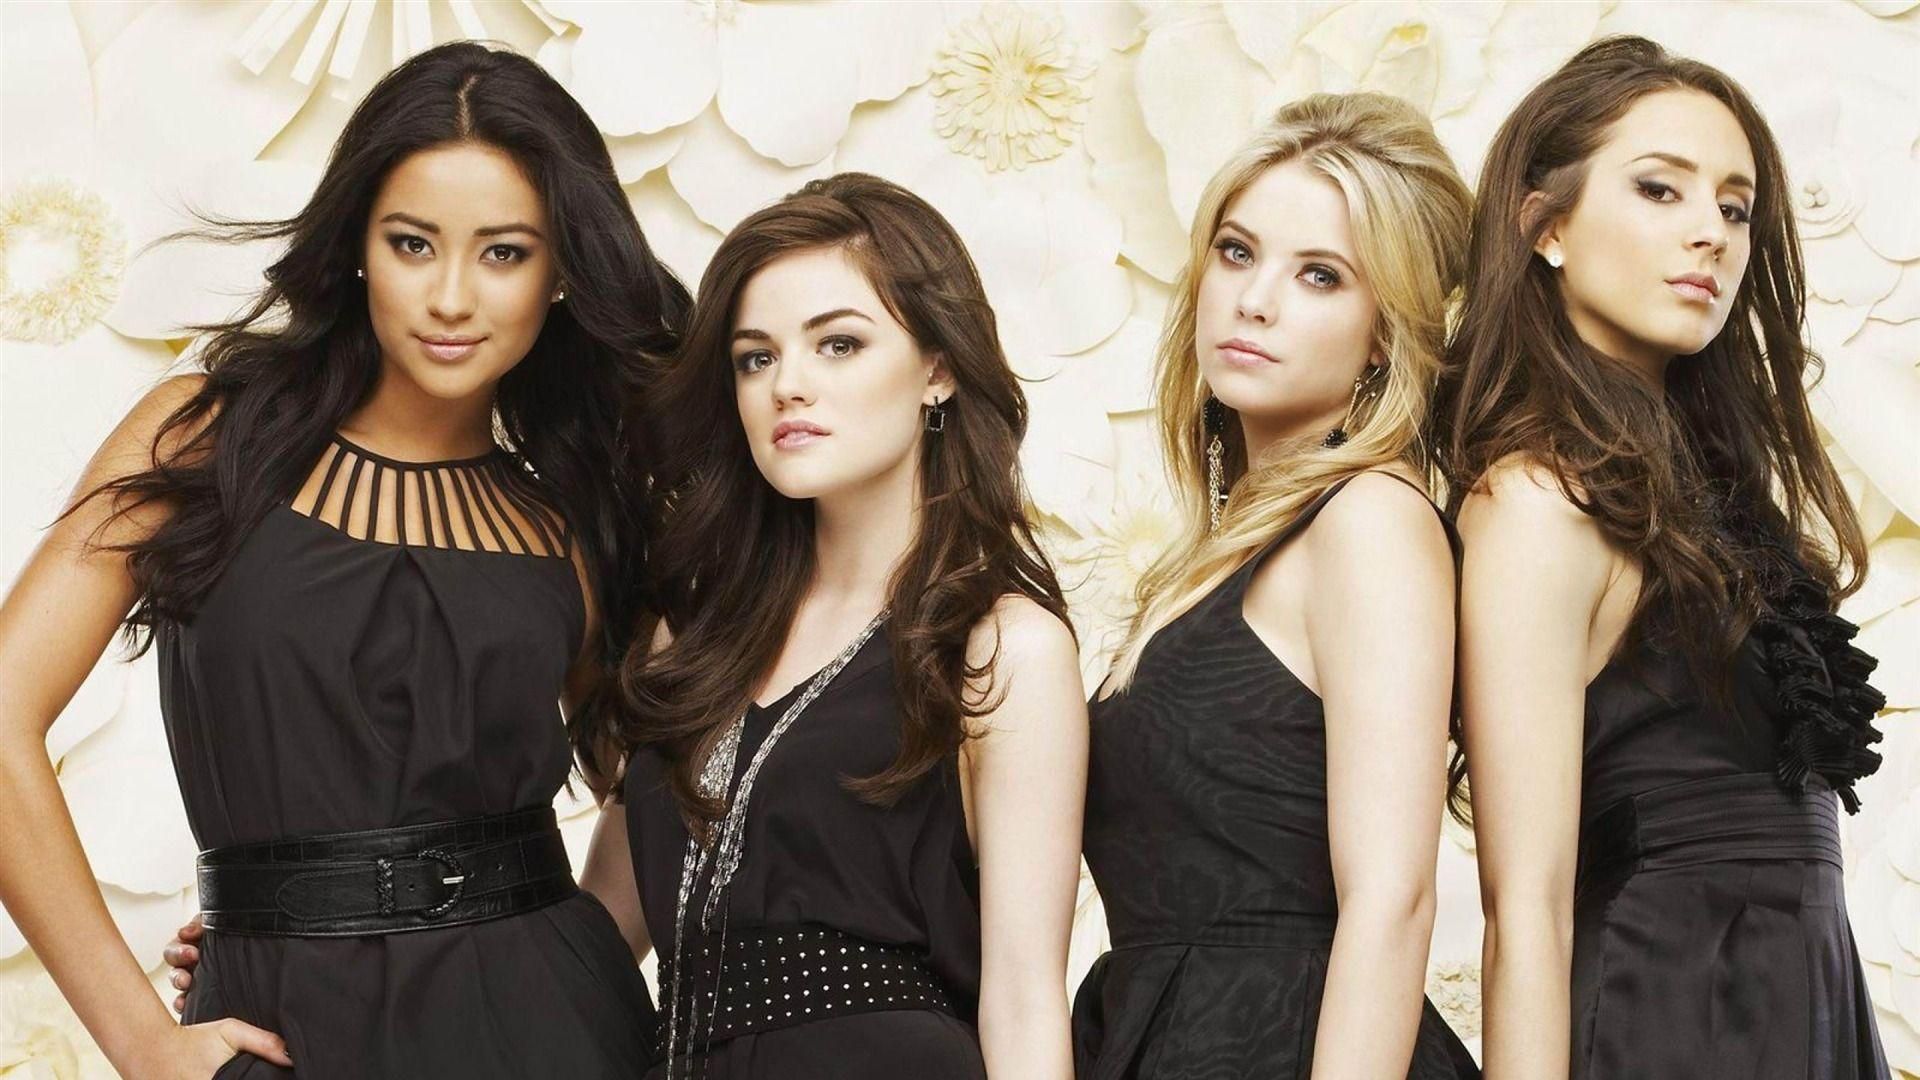 Pretty Little Liars Wallpapers - Wallpaper Cave